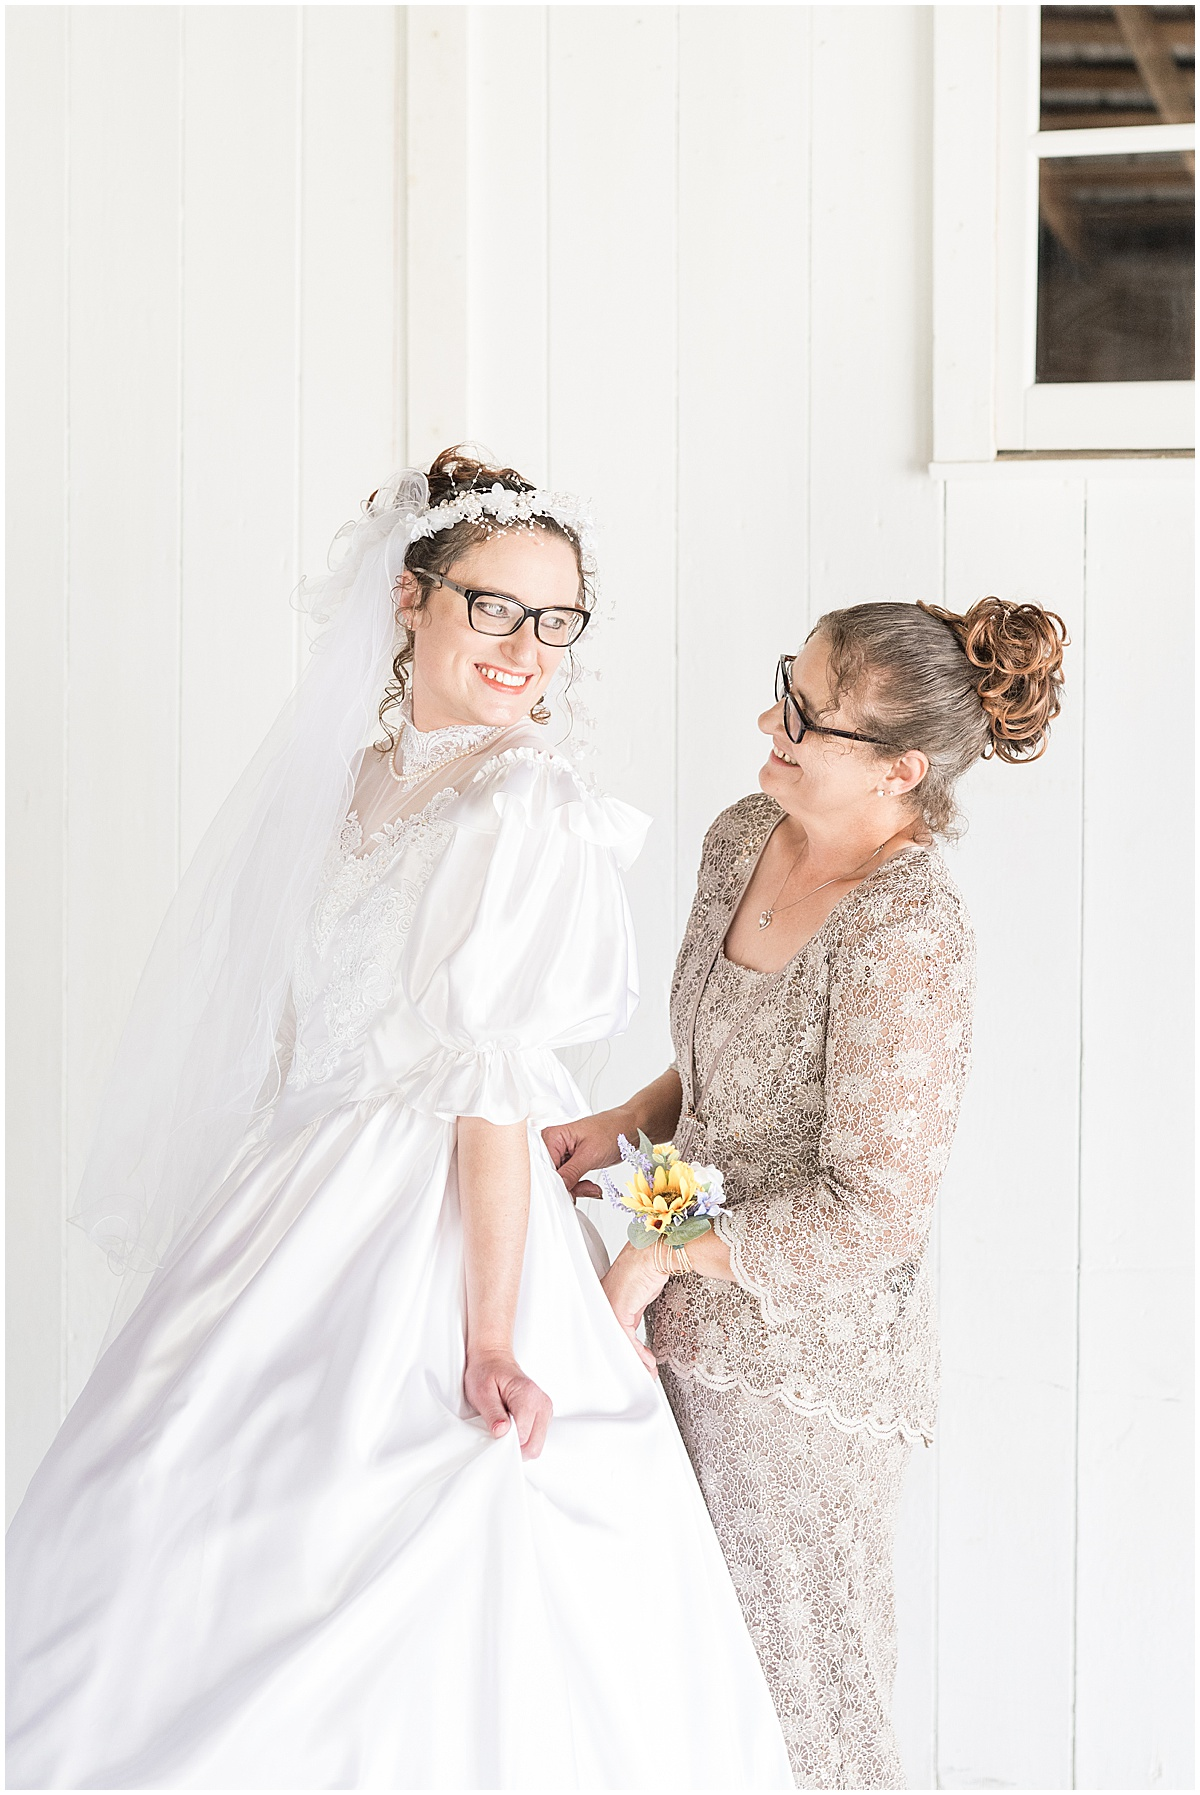 Bride getting ready in mother's wedding dress for Exploration Acres wedding in Lafayette, Indiana